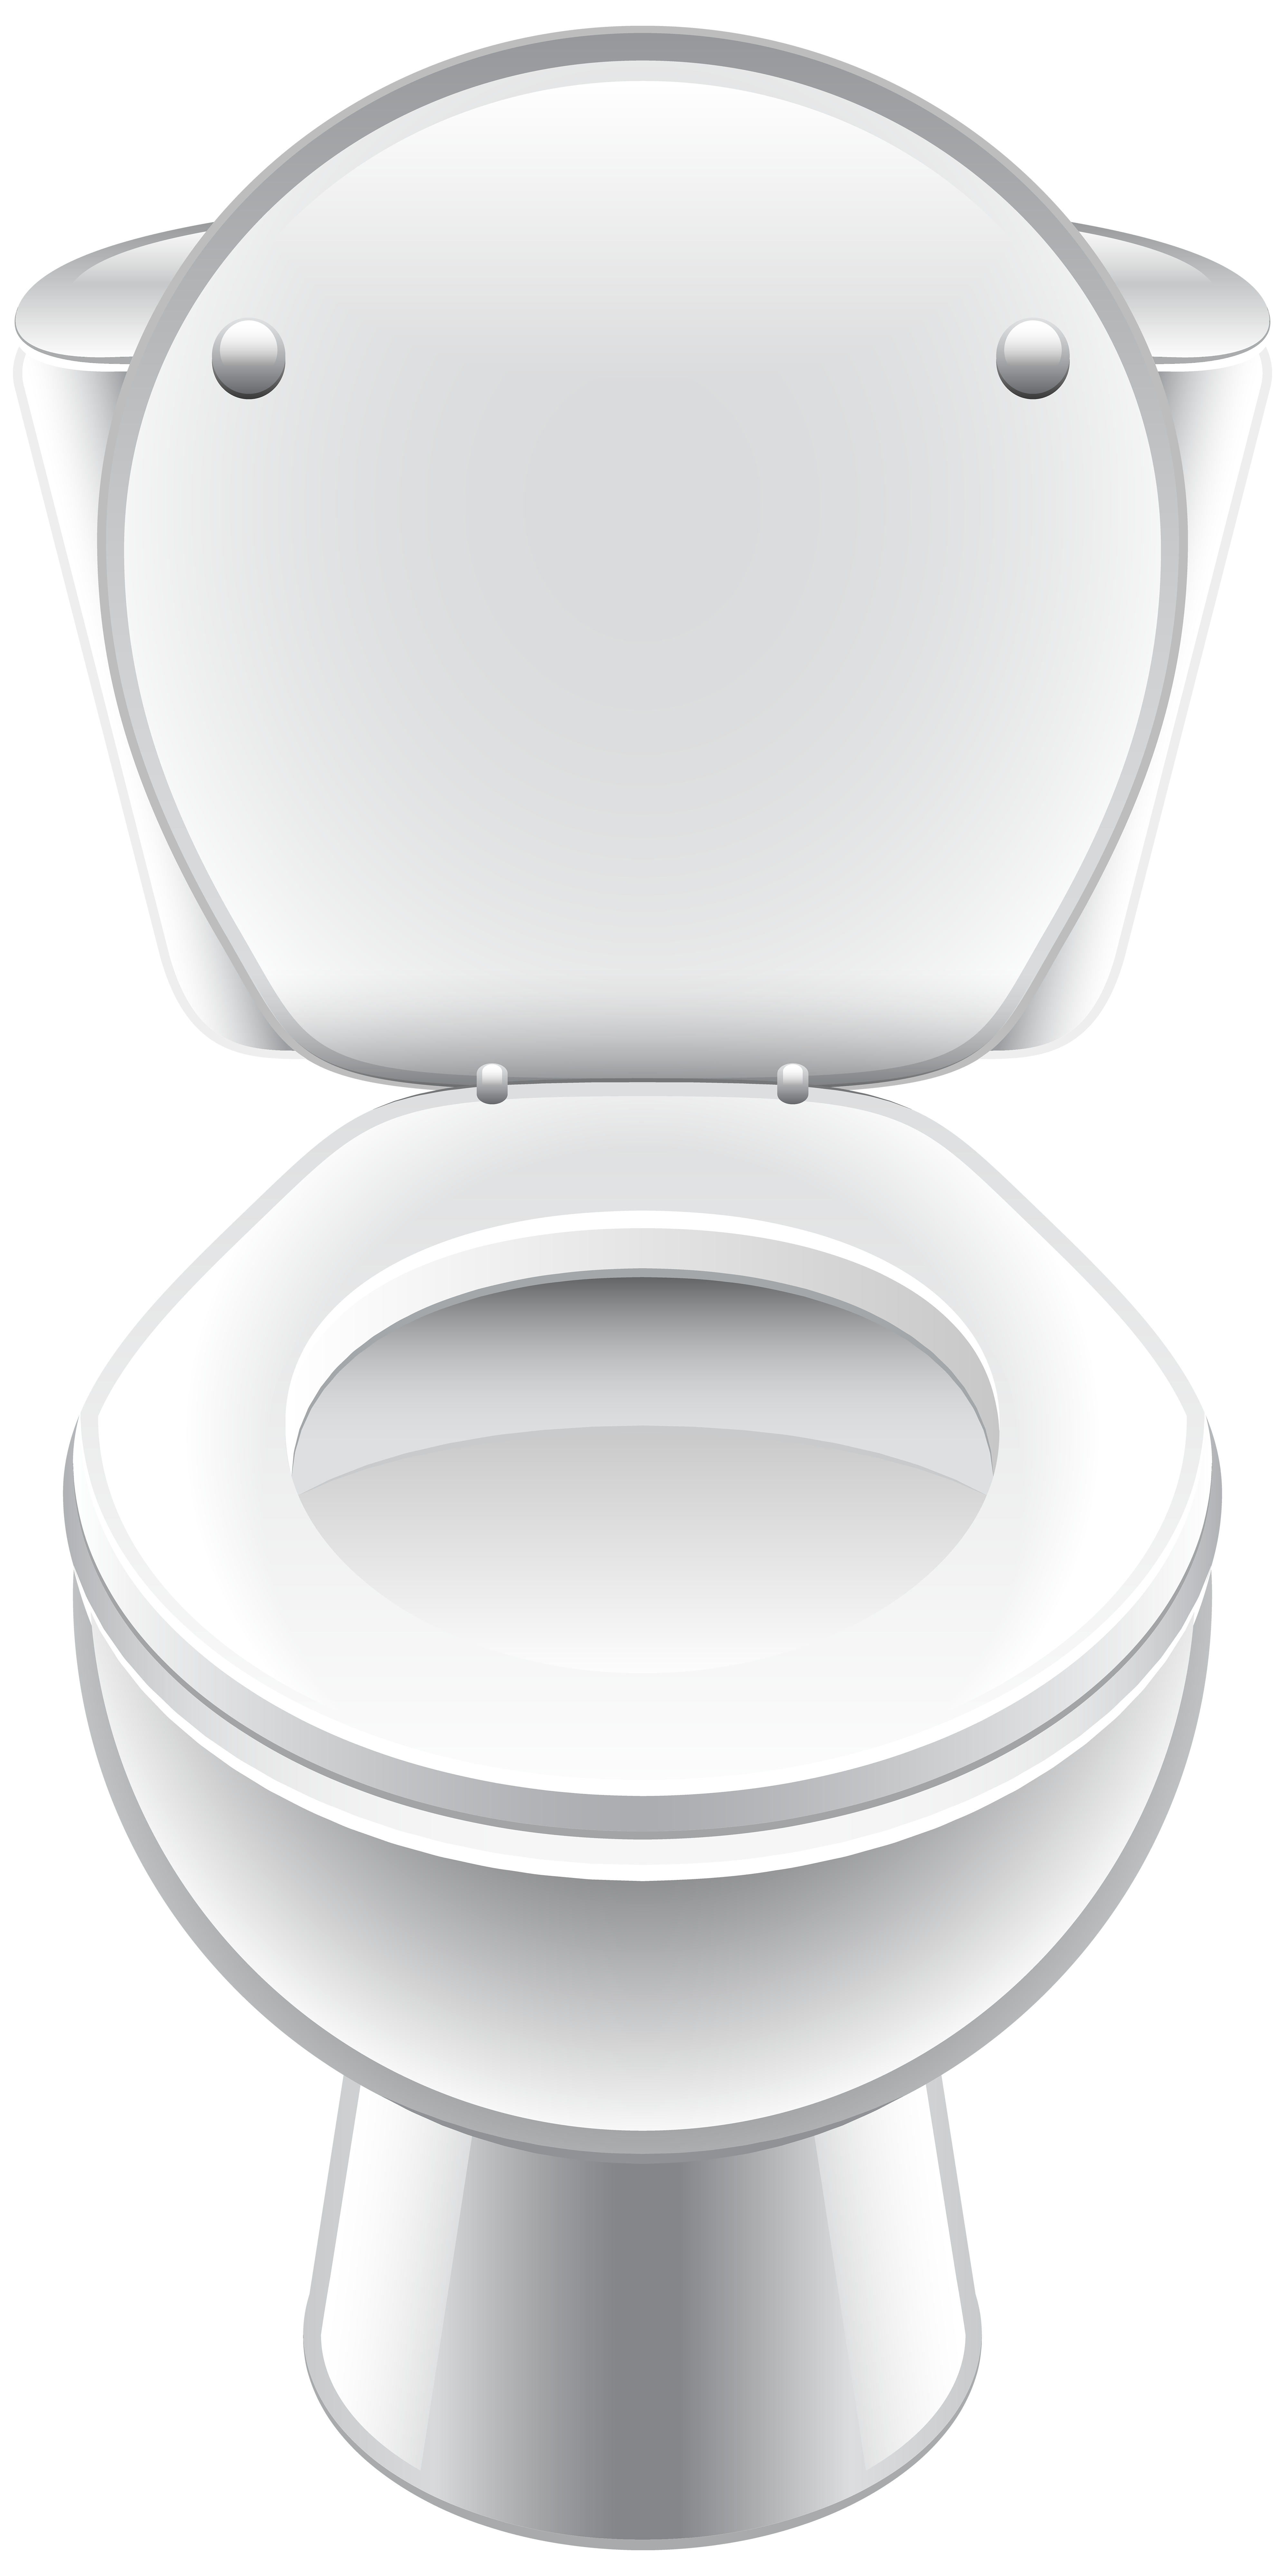 Toiket seat clipart clip art black and white library Toilet Seat PNG Clip Art - Best WEB Clipart clip art black and white library